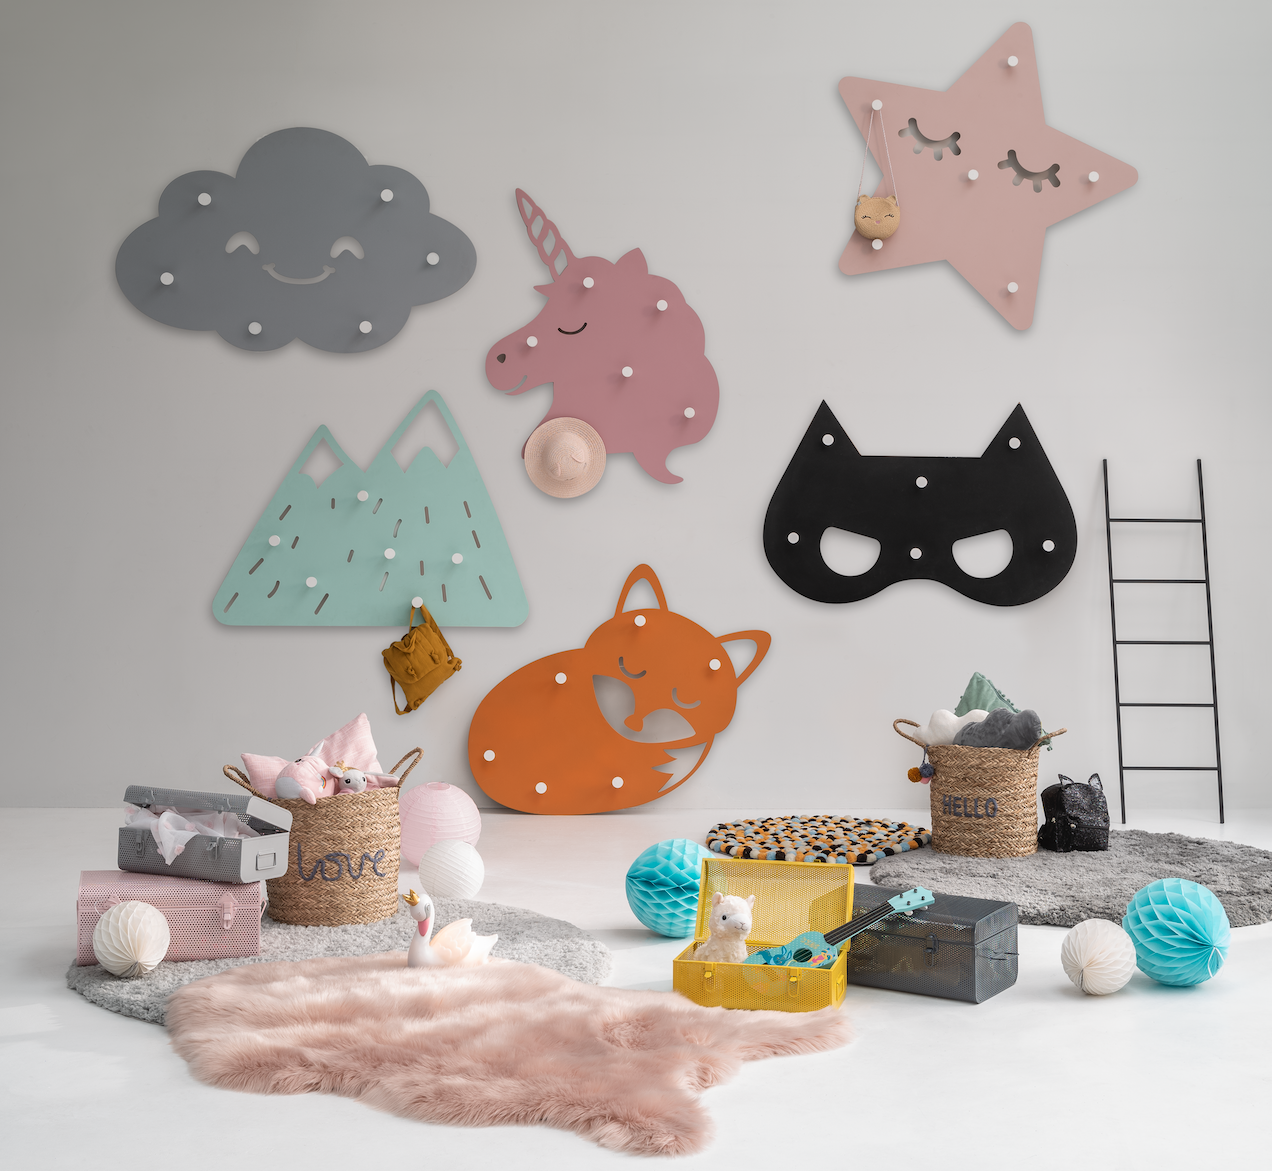 Patere Murale Xl Ully Masque Decoration Chambre Enfant Meuble Enfant Meuble Gifi Decoration Chambre Enfant Pateres Murale Meuble Enfant